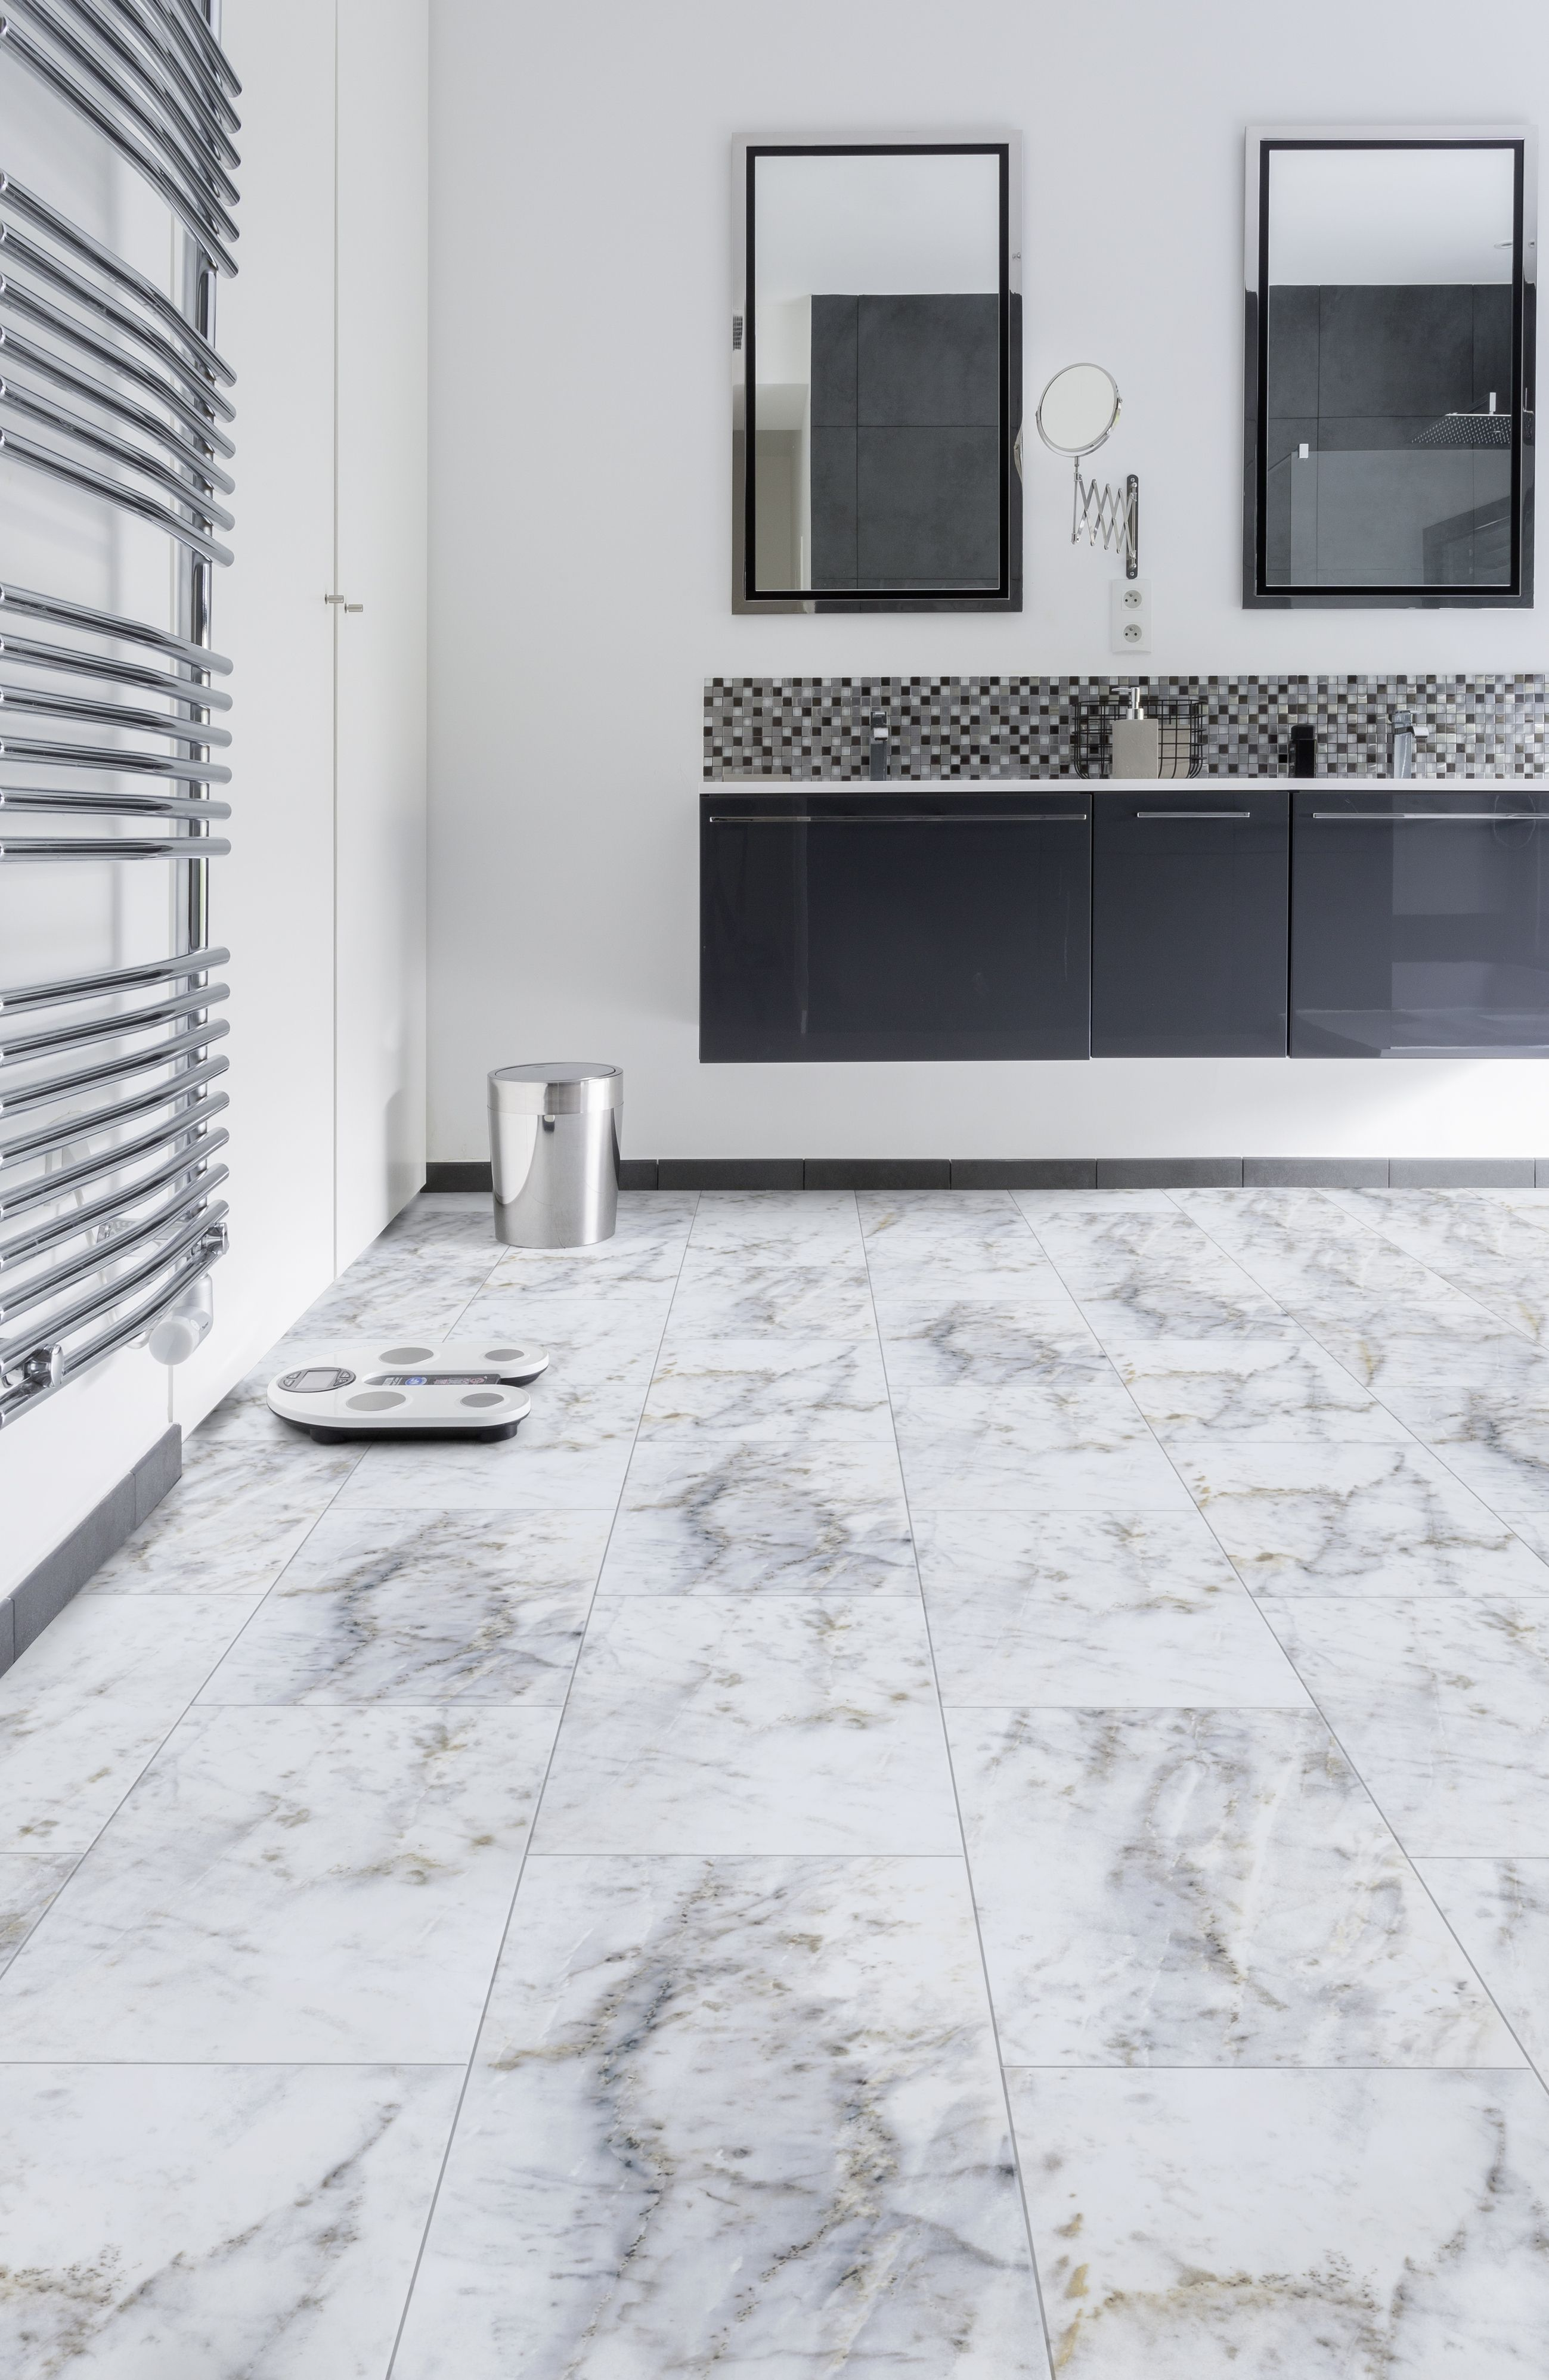 Sdb Creation New Creation 30 Lvt In Carrare Luxury Vinyl Tiles In 2019 Sdb